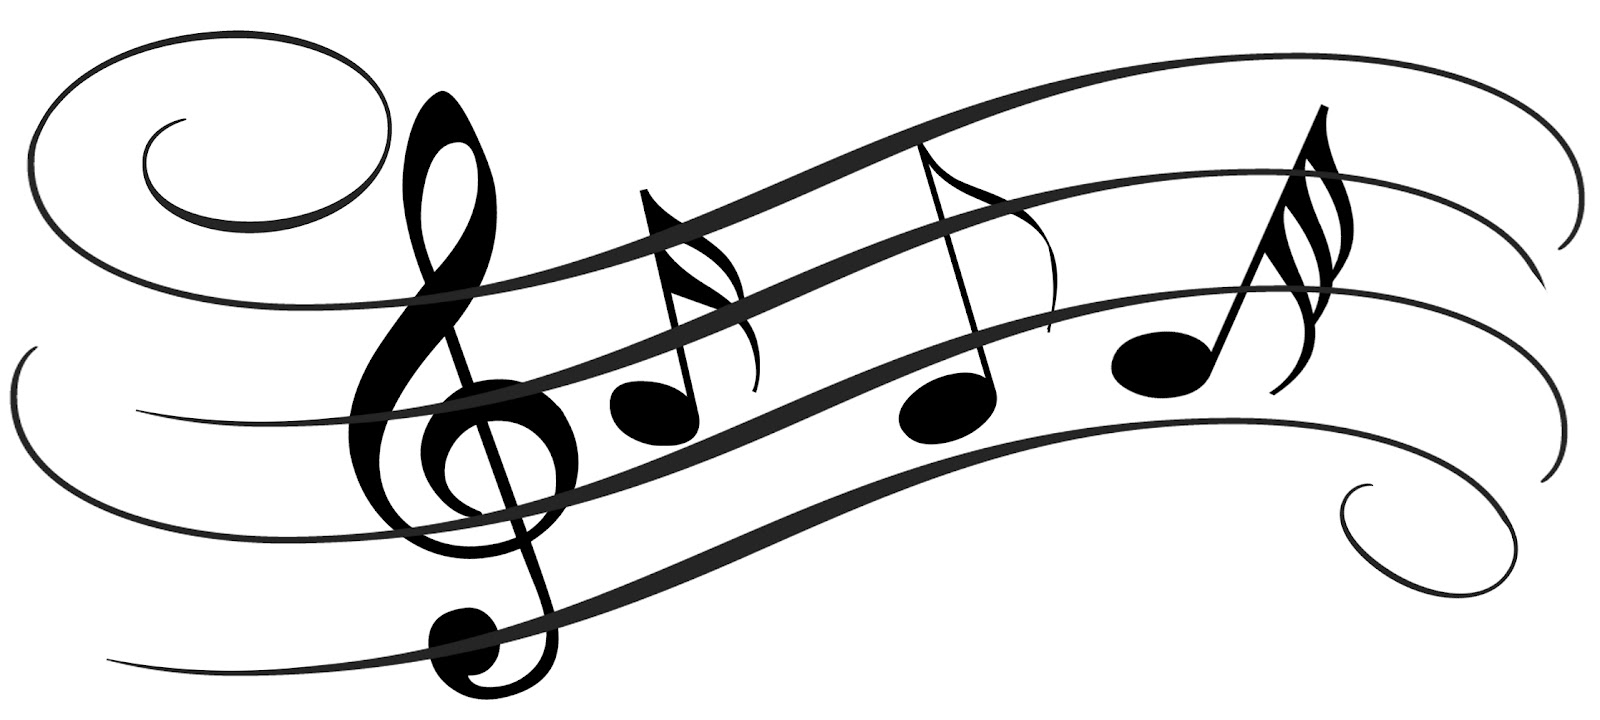 image regarding Large Printable Music Notes titled massive printable tunes notes -